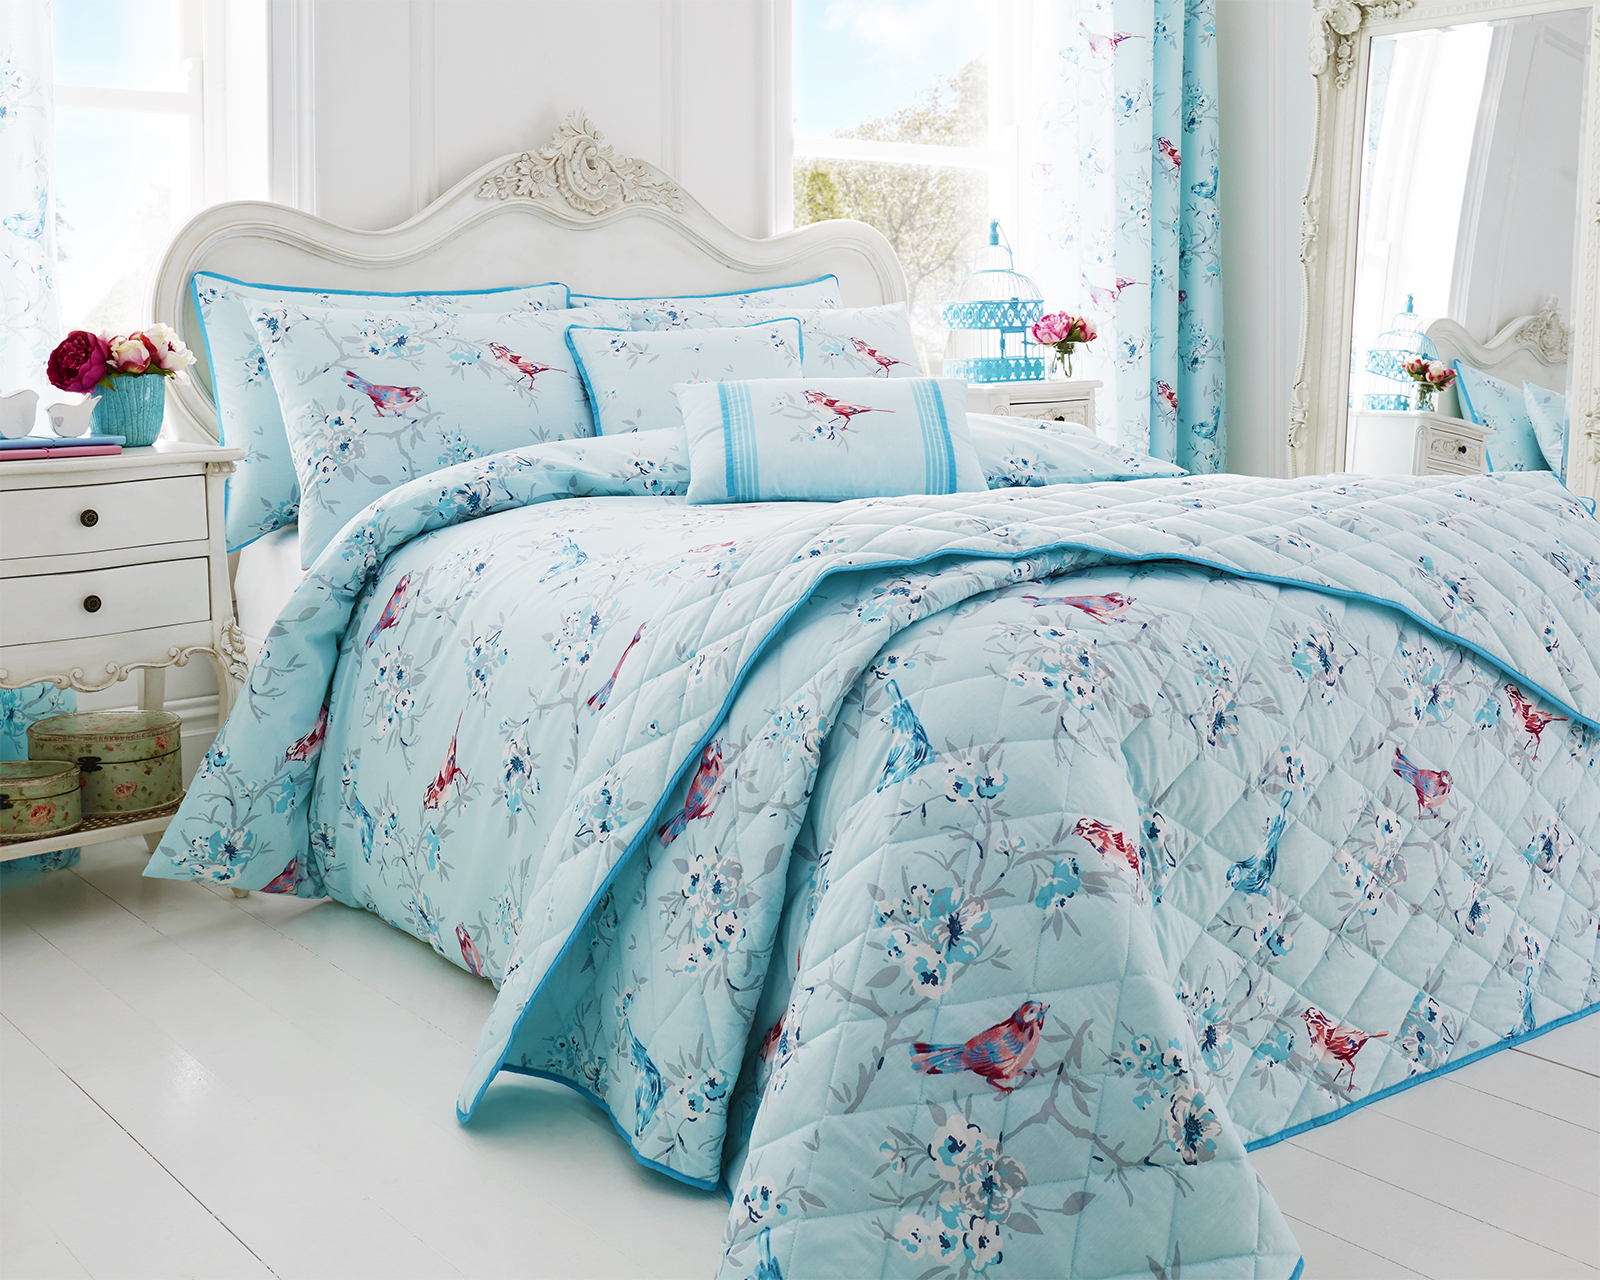 Cute Blue Bird Design Luxury Colourful Duvet Sets Matching Bedroom